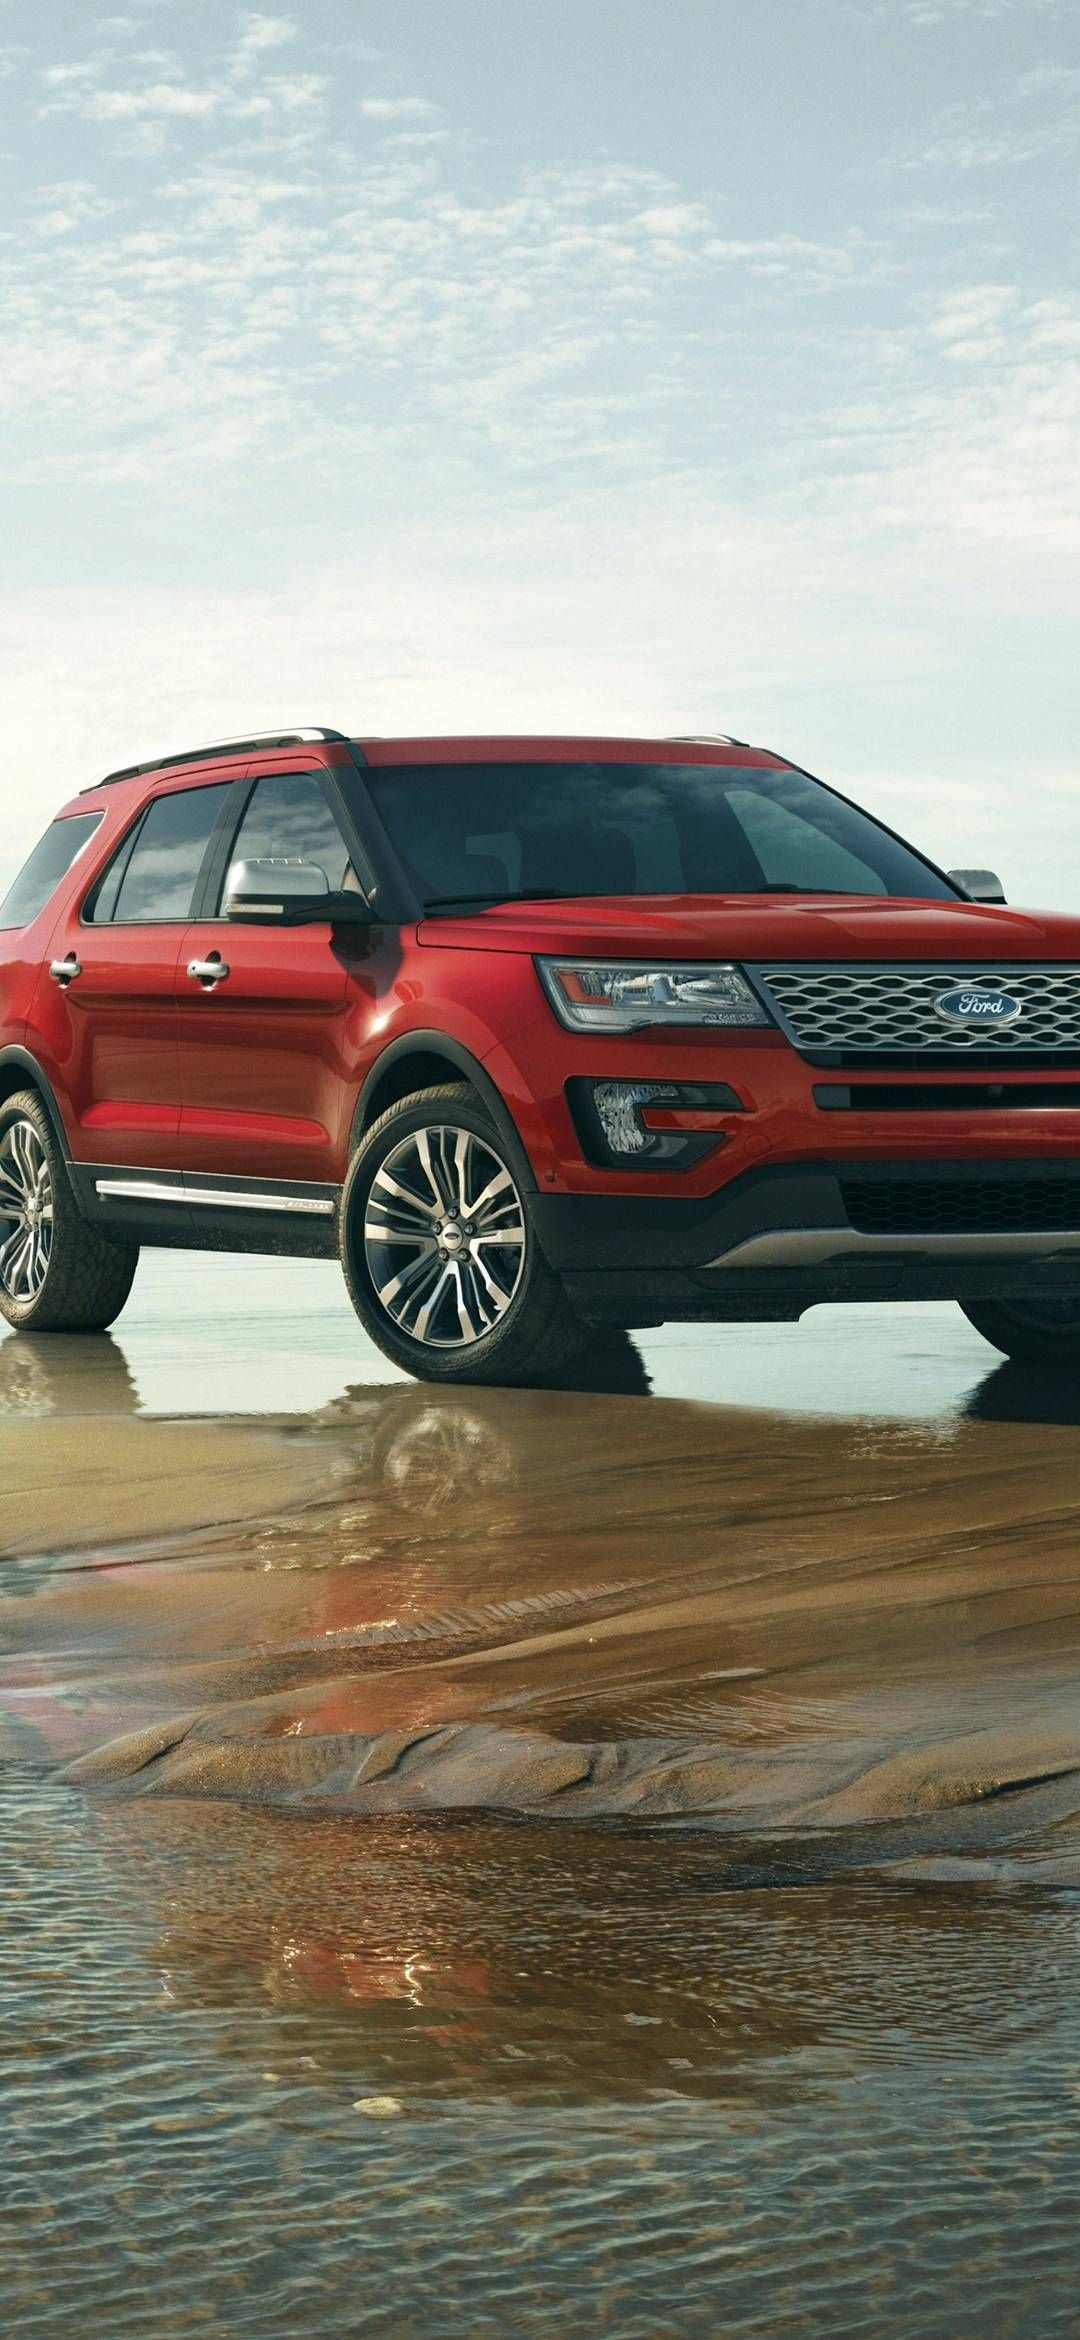 1080x2340 Wallpapers Stock Wallpapers Ford Explorer 2016 Wallpaper